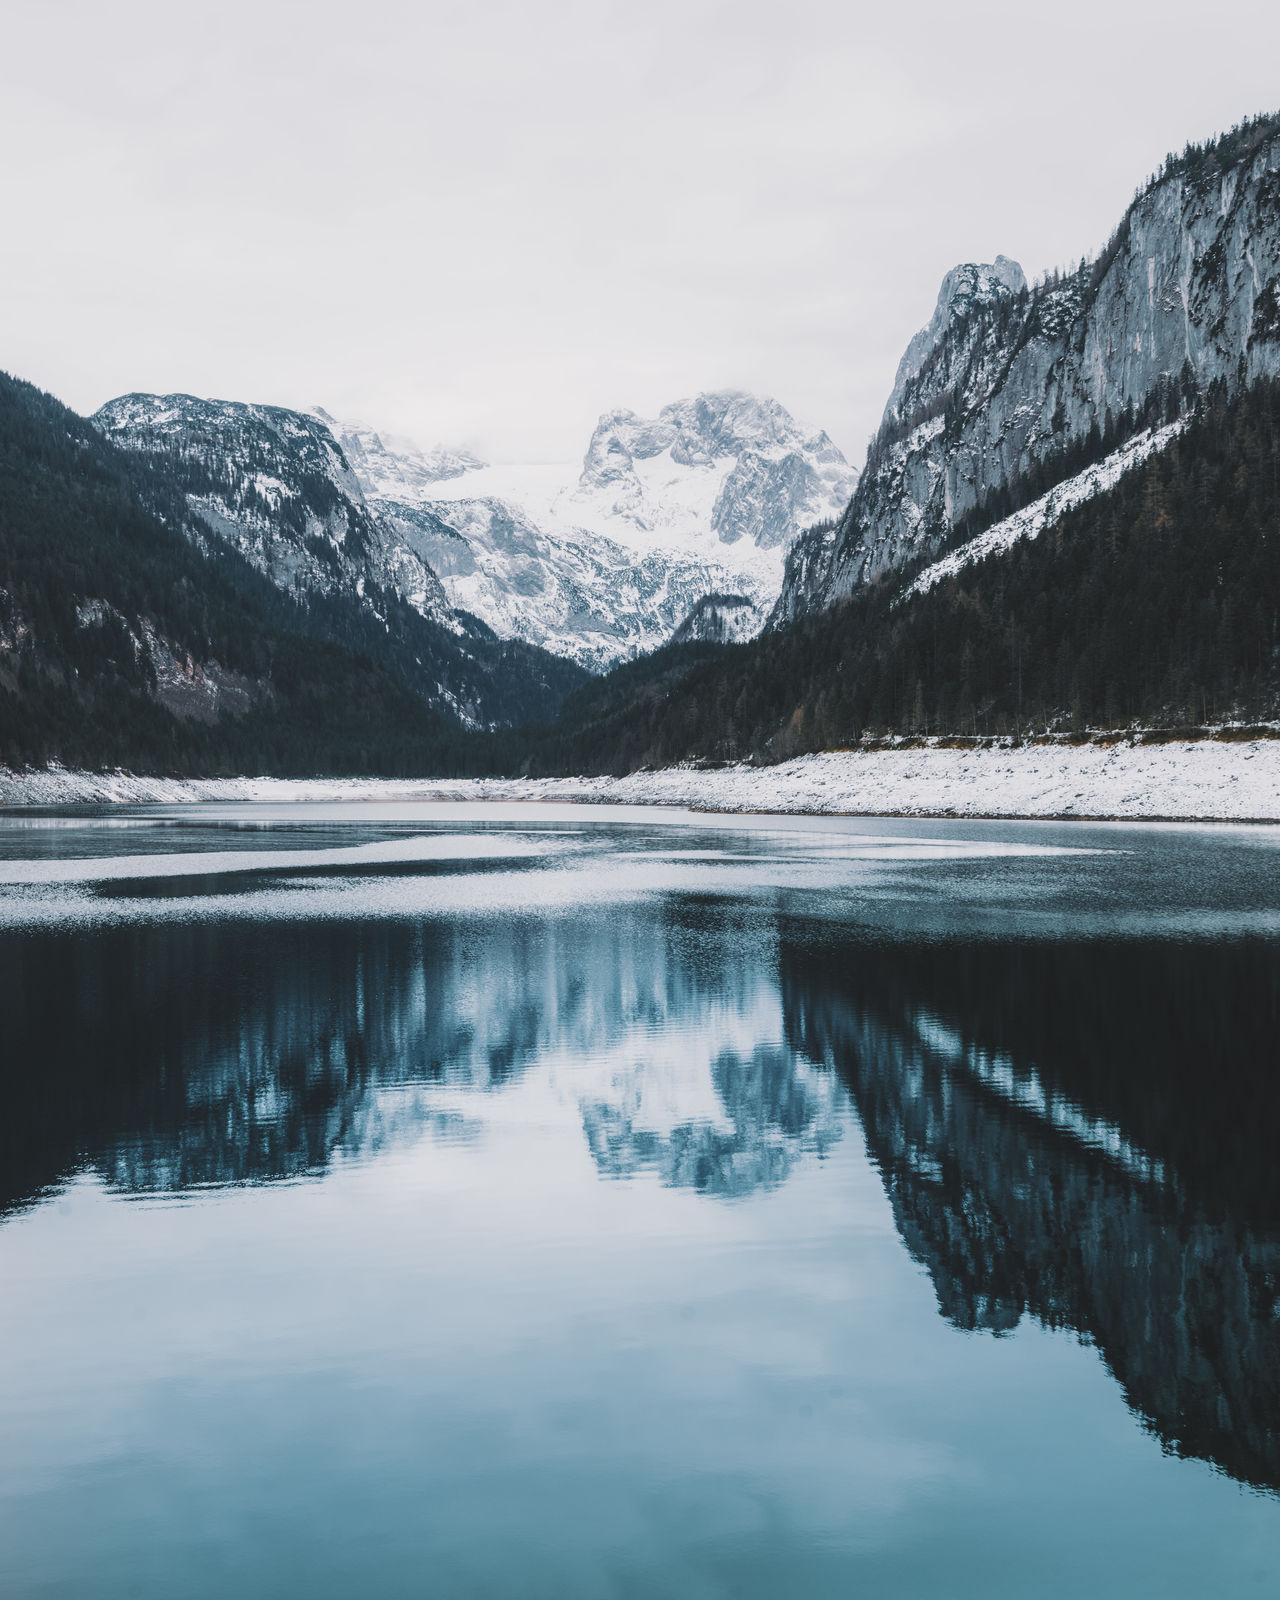 Mountain lake winter reflection Beauty In Nature Cold Day EyeEm Best Shots EyeEm Nature Lover Lake Landscape Landscape_Collection Mountain Mountain Range Nature No People Outdoors Reflection Reflection Scenics Sky Snow Sunset Tranquil Scene Water Winter